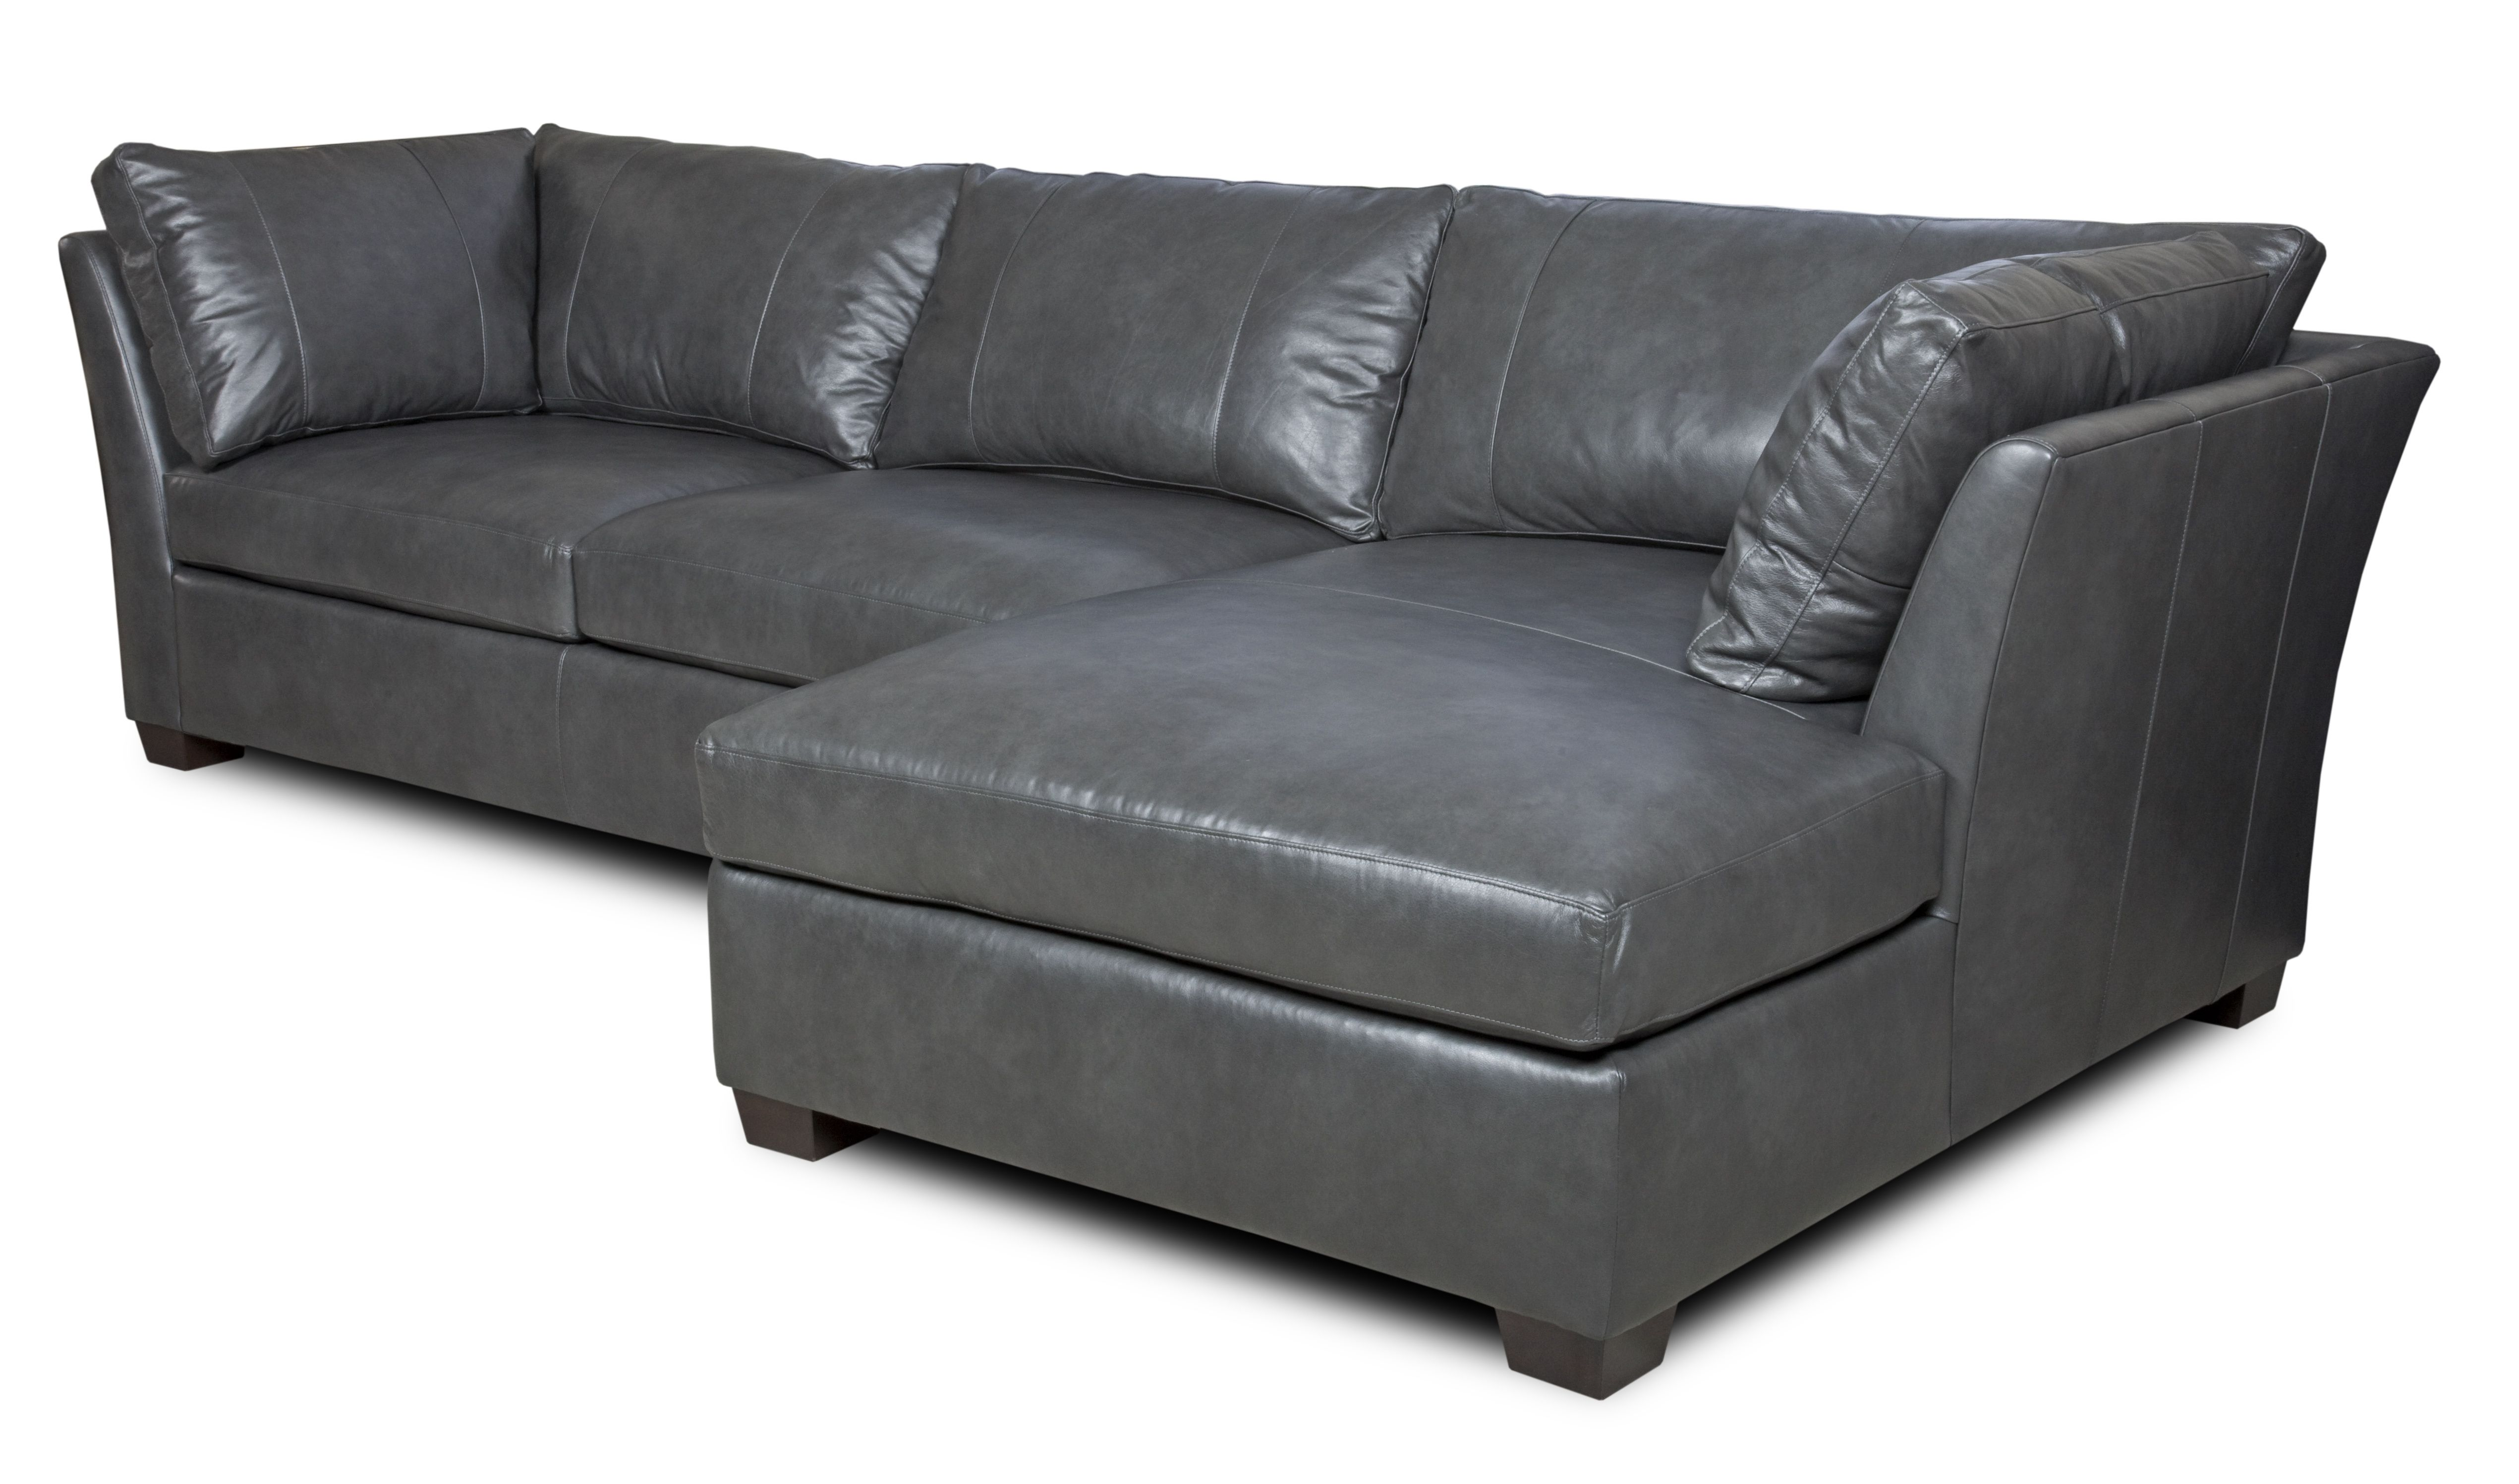 0720 906797 Jpg 5082 2994 Leather Couch Sectional American